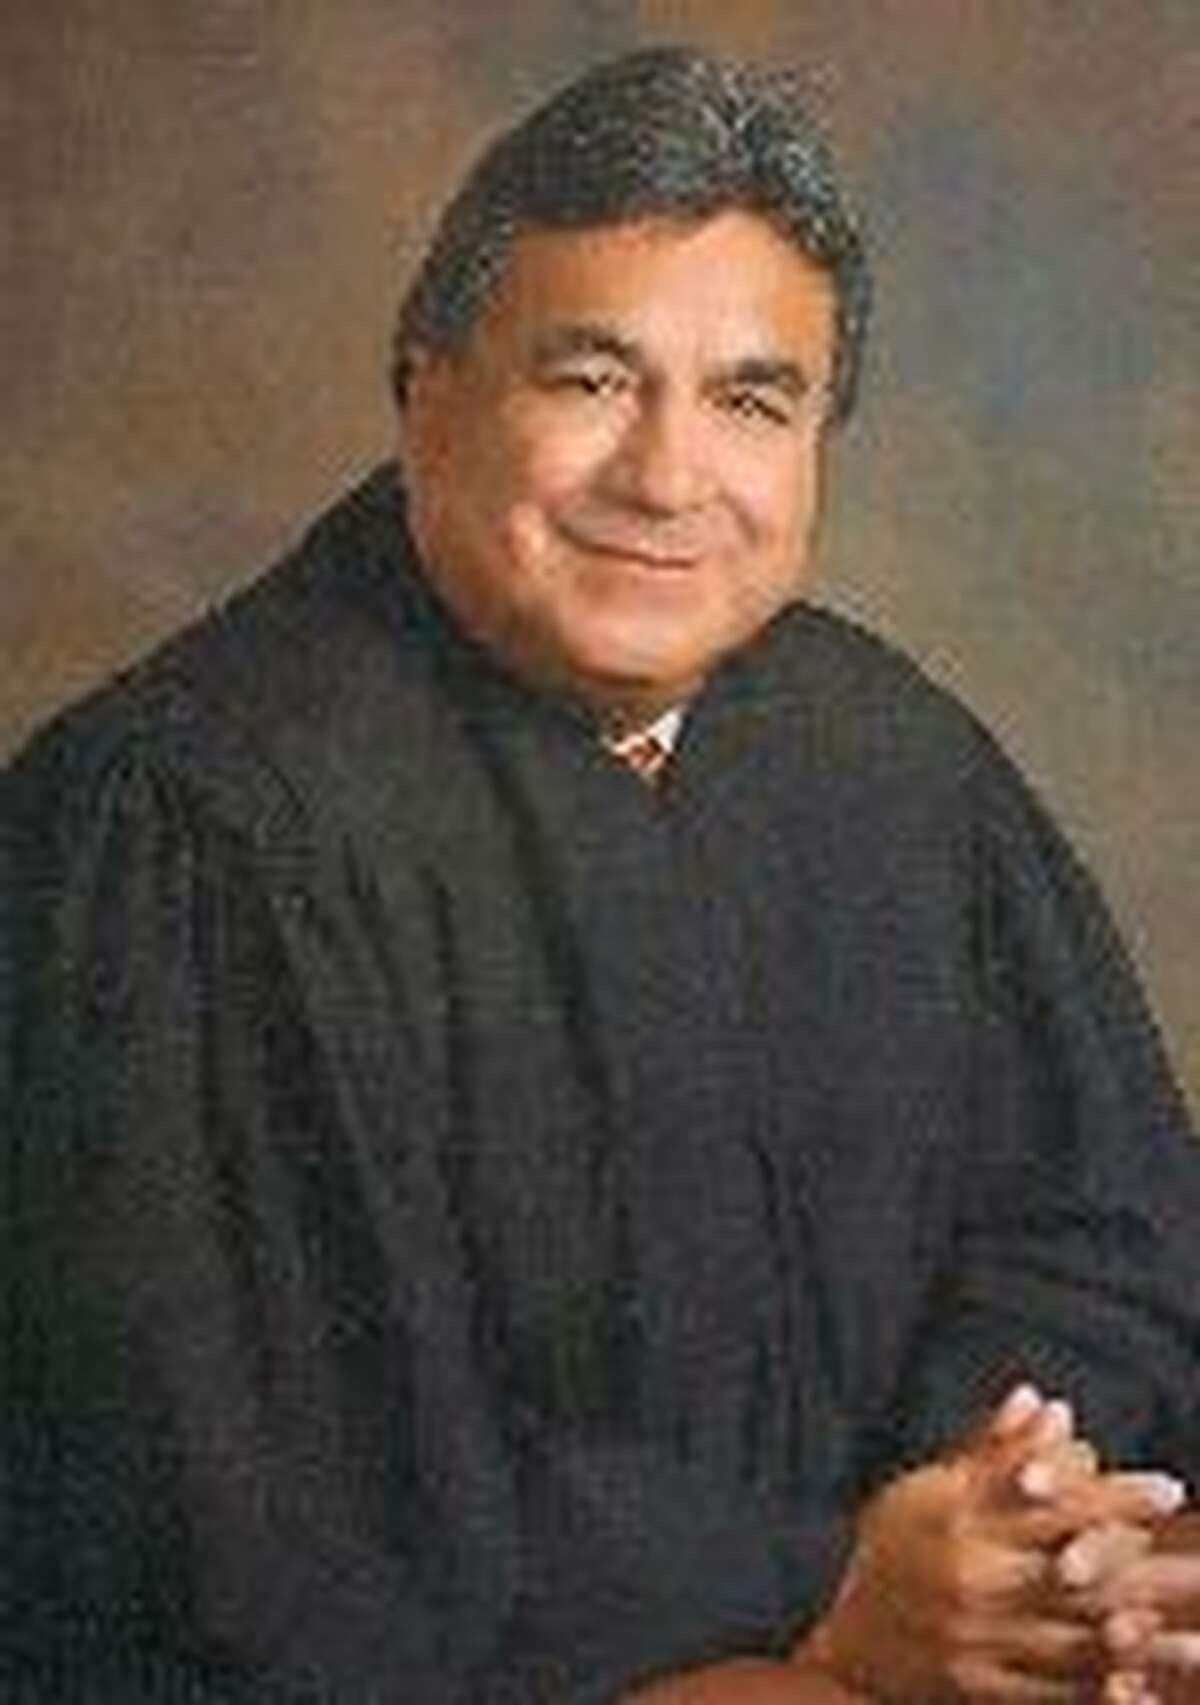 """District Judge Rodolfo """"Rudy"""" Delgado is seen in an undated photo taken from the 93rd District Court website. He is charged with bribery, according to FBI officials."""